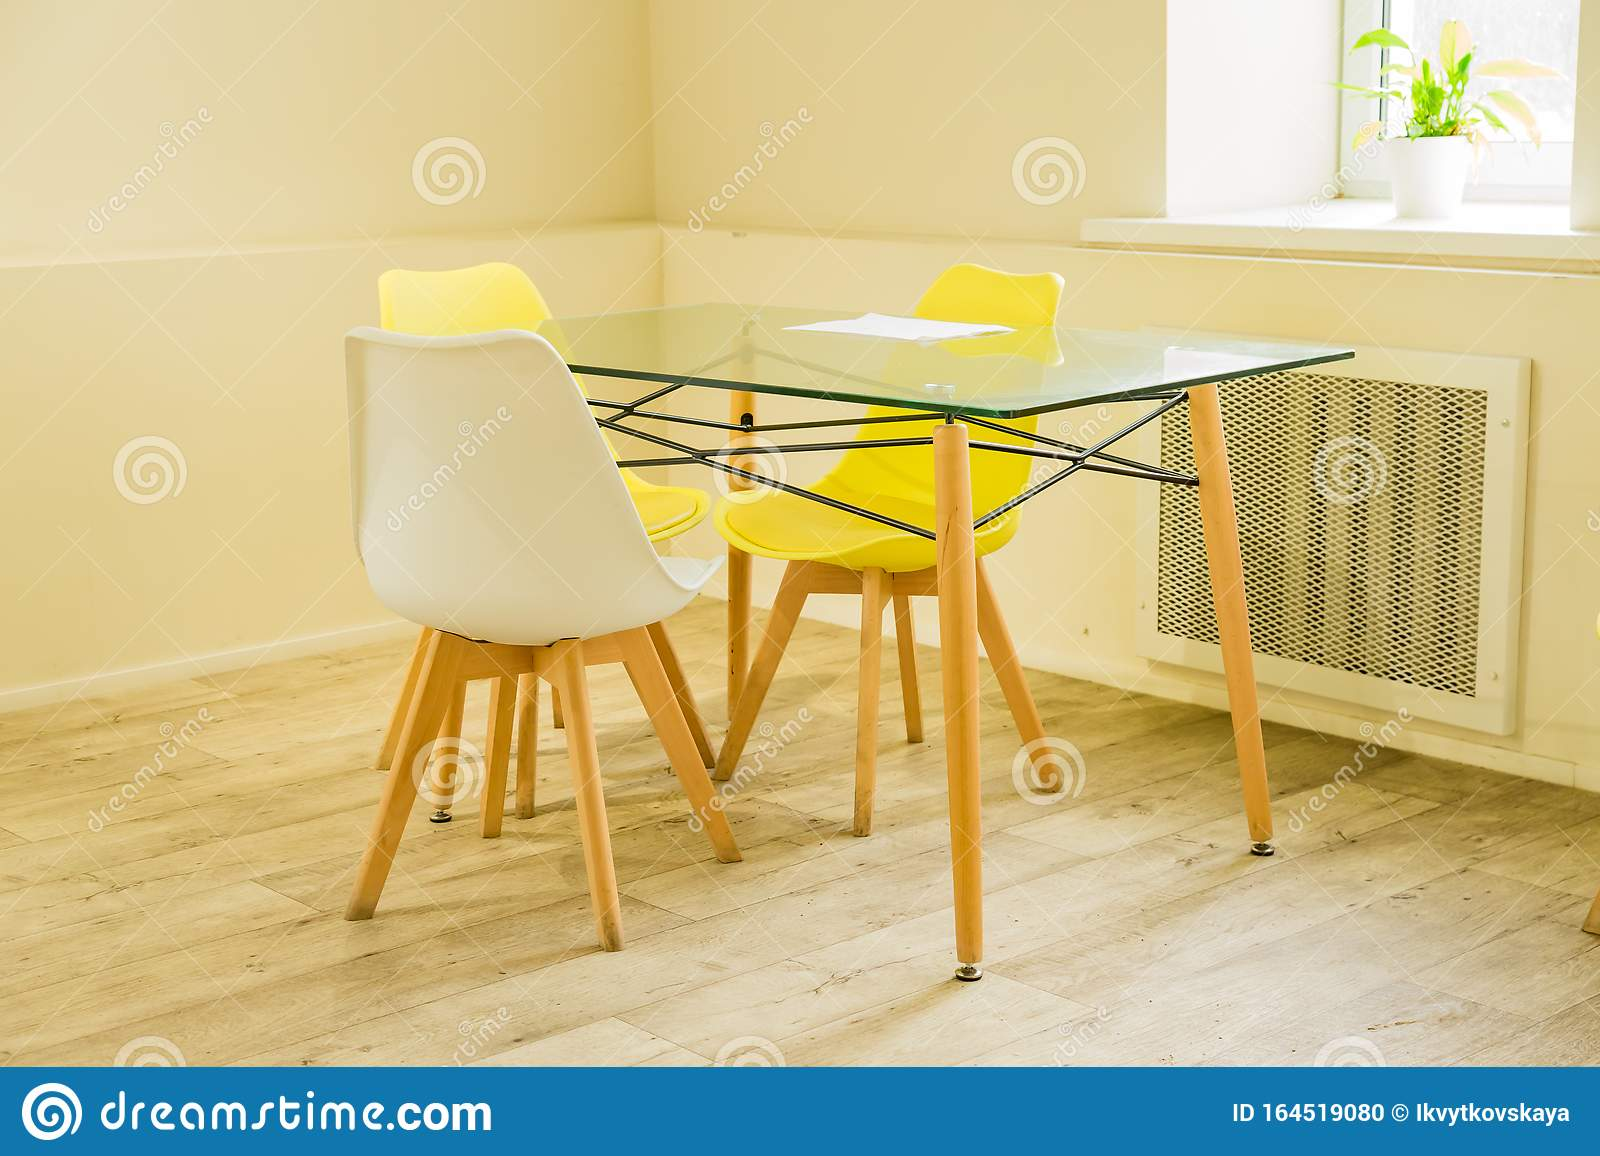 Modern Dining Room Designed In Scandi Style Glass Table And Yellow And White Chairs Stock Photo Image Of Chair Estate 164519080